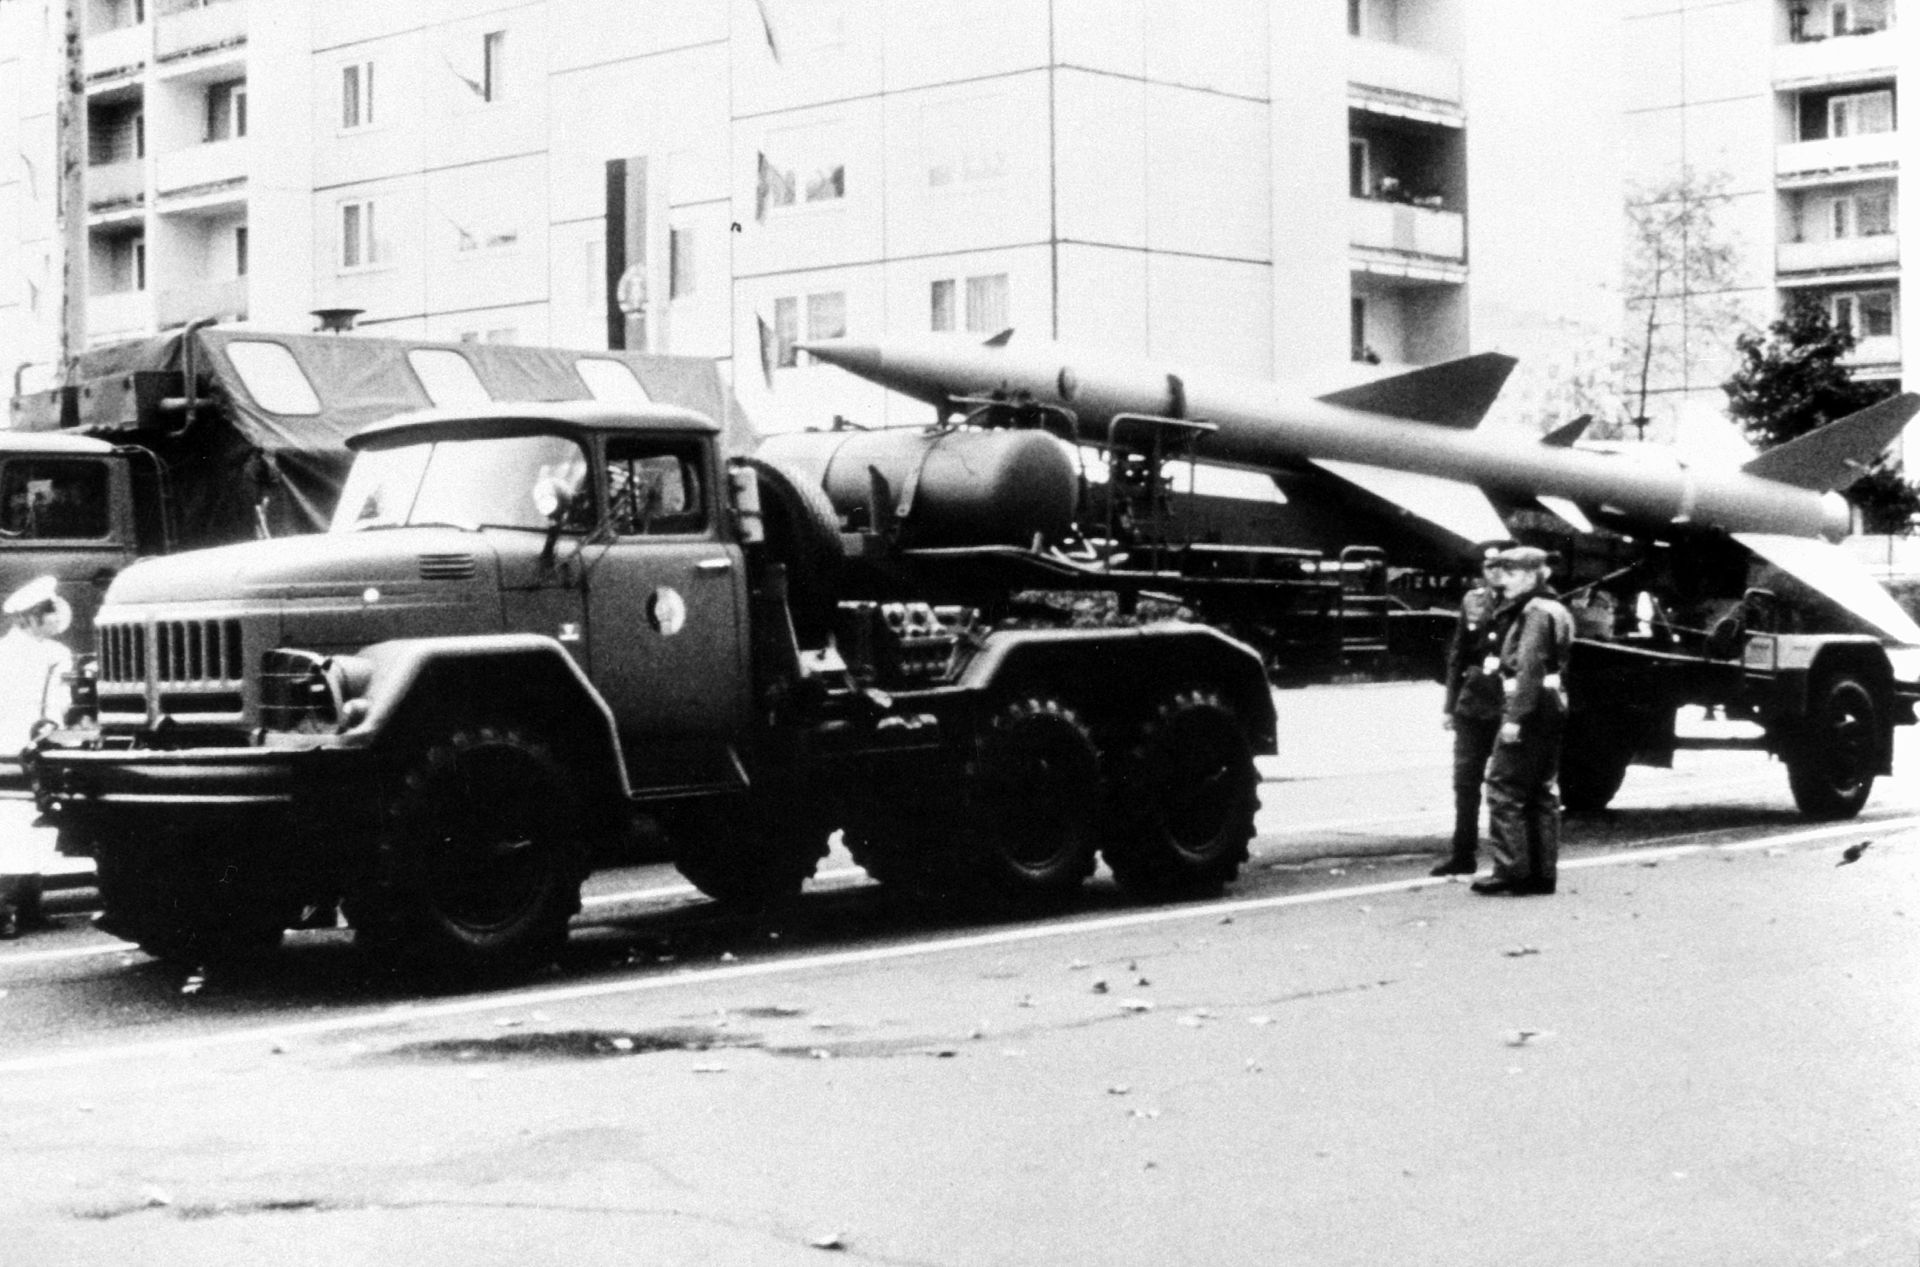 SA-2_Guideline_towed_by_a_ZIL-131_truck.JPEG